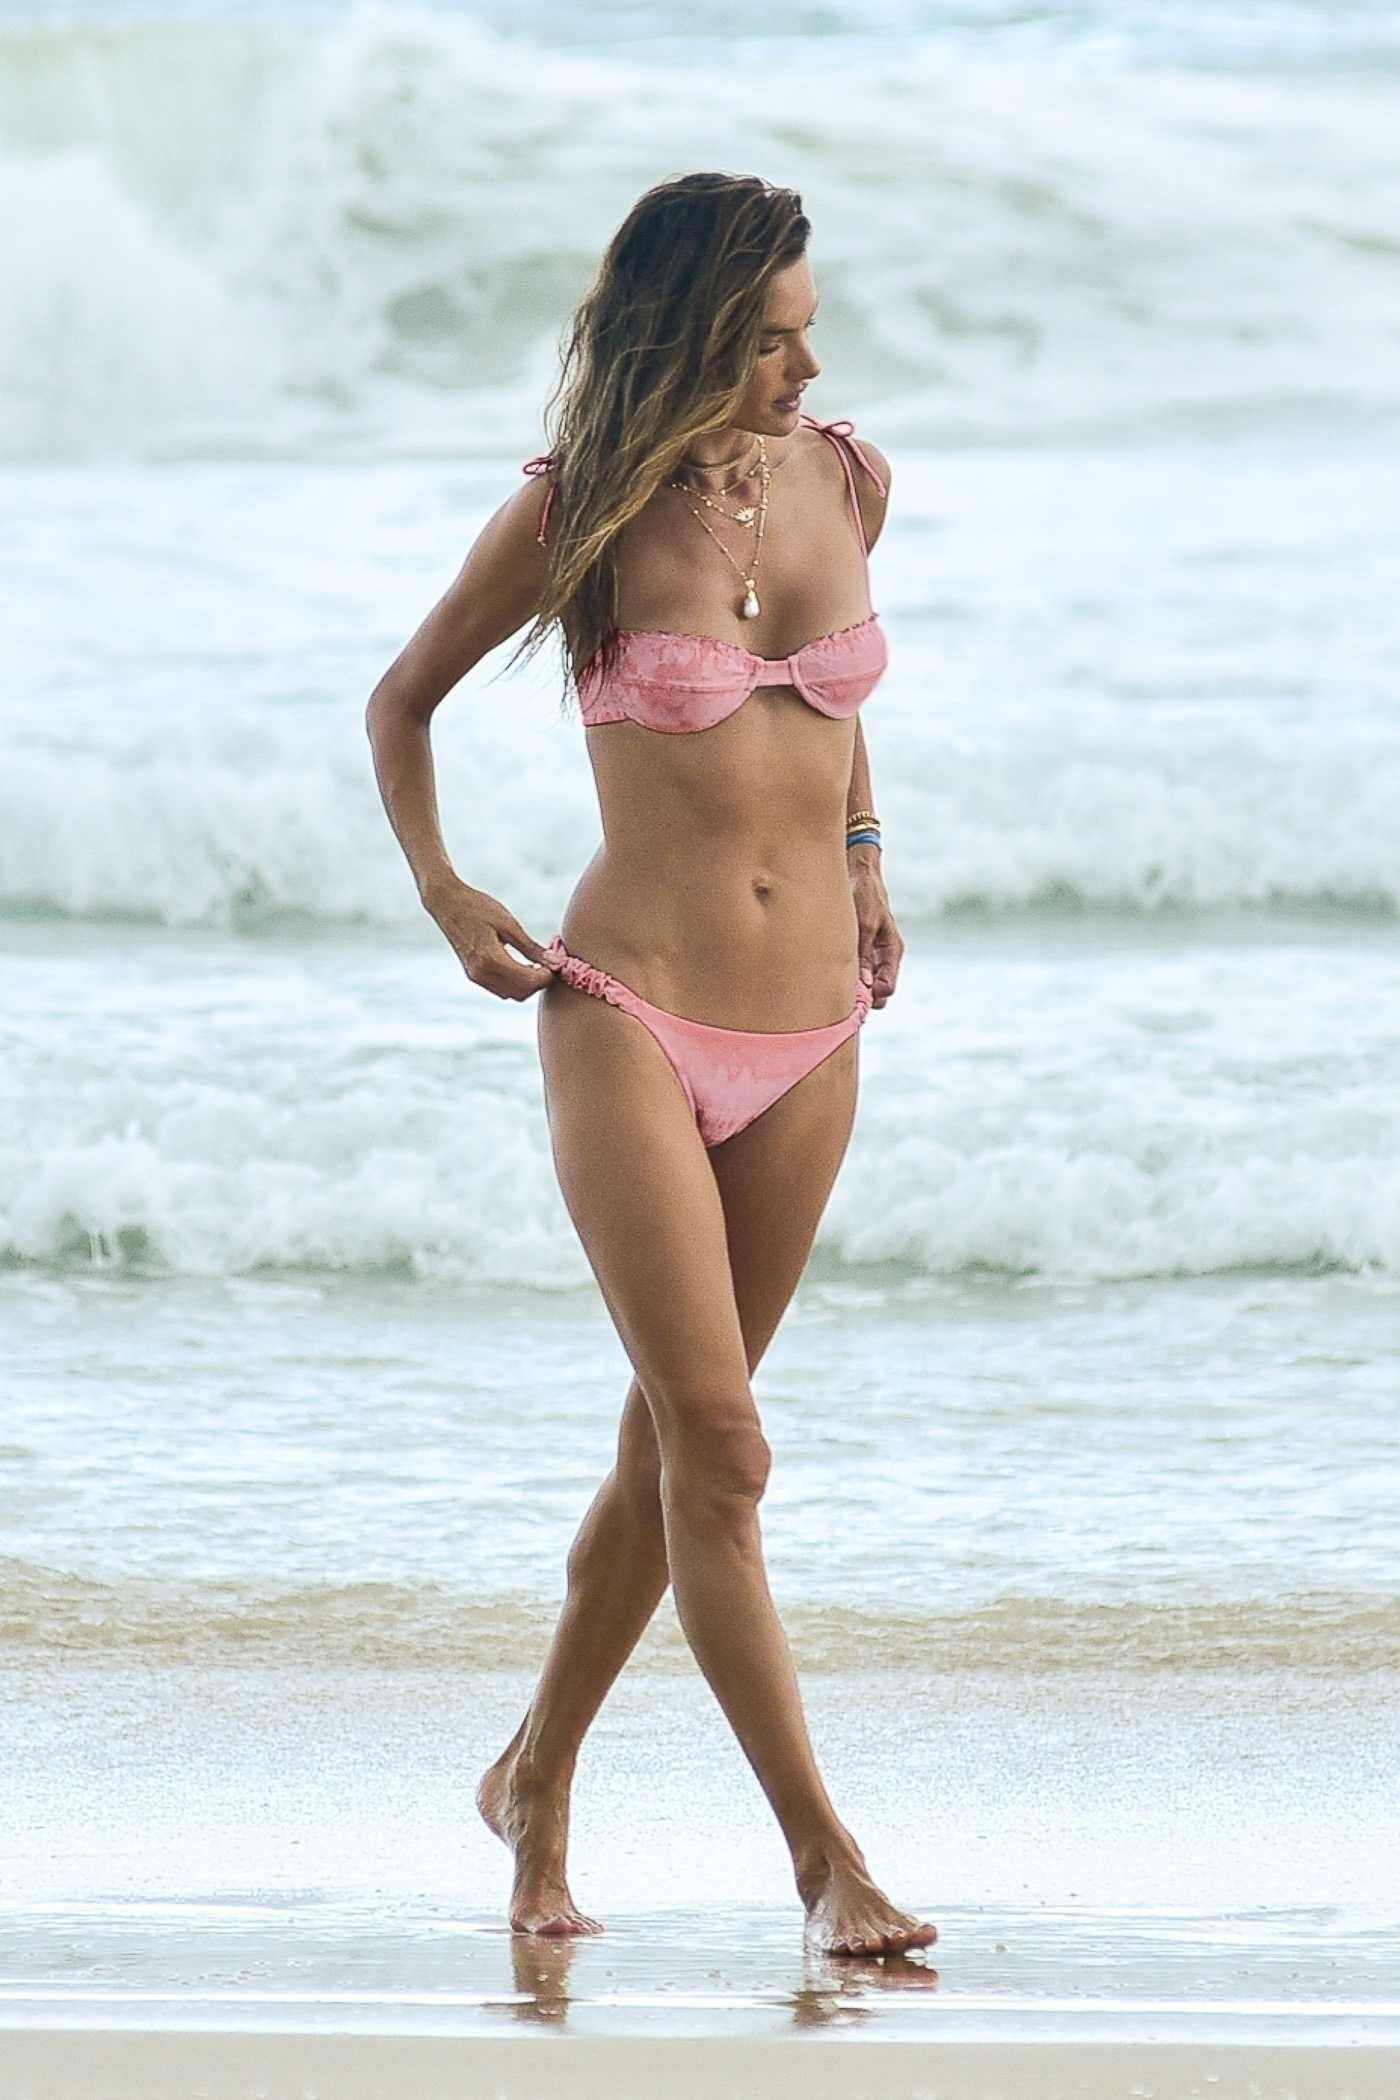 Alessandra Ambrosio in a Pink Bikini on the Beach in Florianopolis 12/20/2020